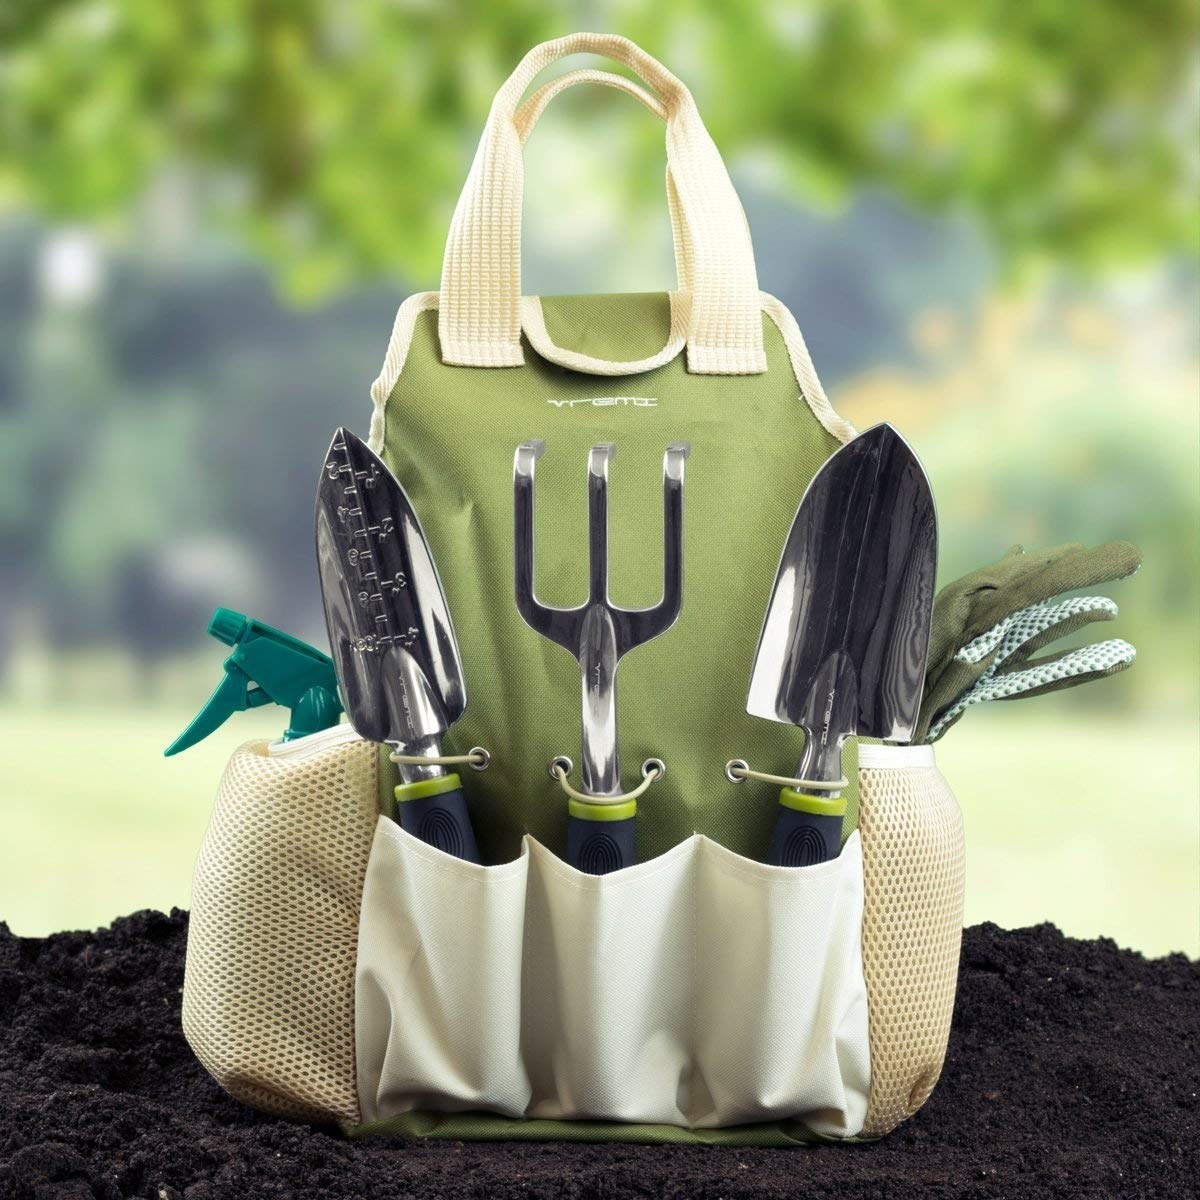 A carrying bag with tools like a spray bottle, tiny rake, a trowel, and gloves